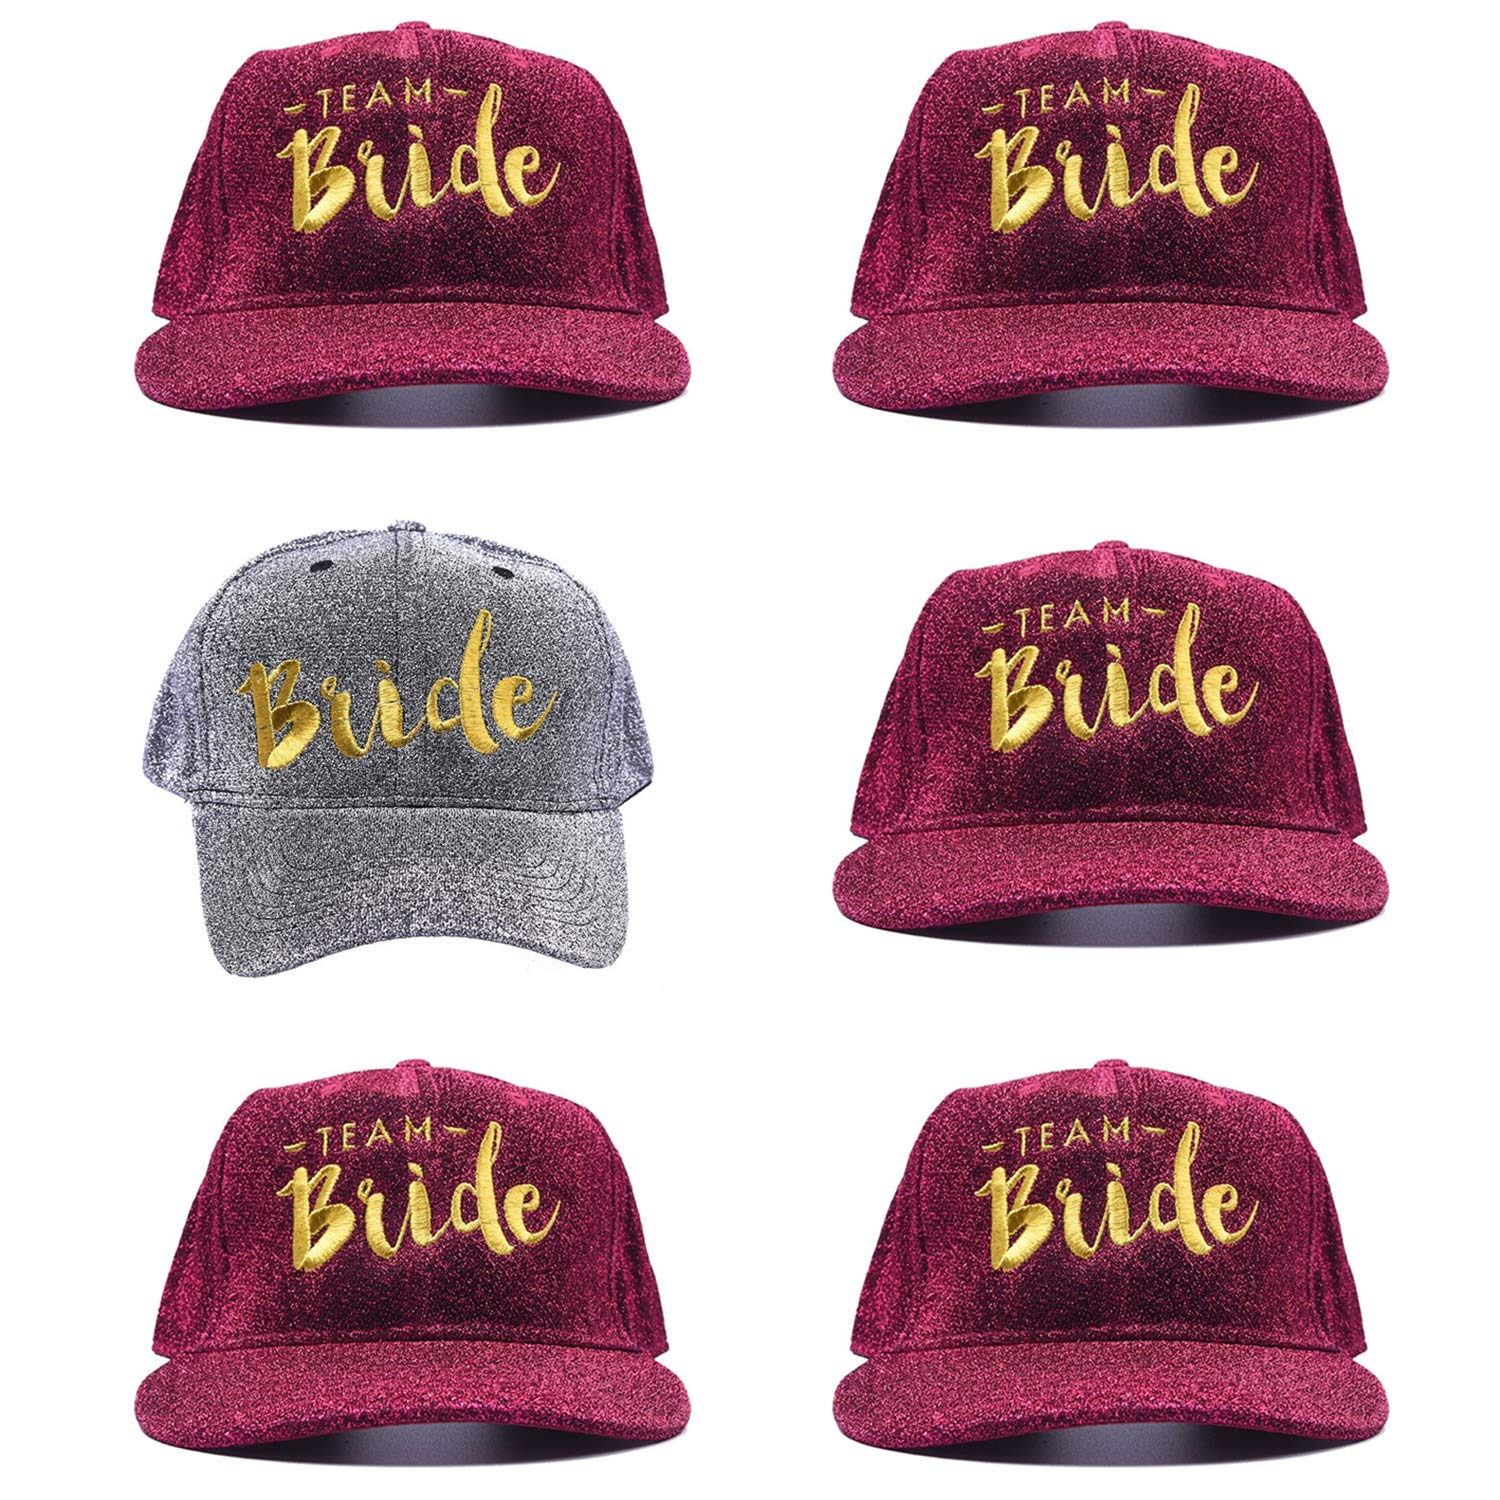 6 Pack Bachelorette Party Trucker Hats Team Bride Baseball Caps Bridal Shower Gold Embroidery Hen Party Beach Favors (Gray)